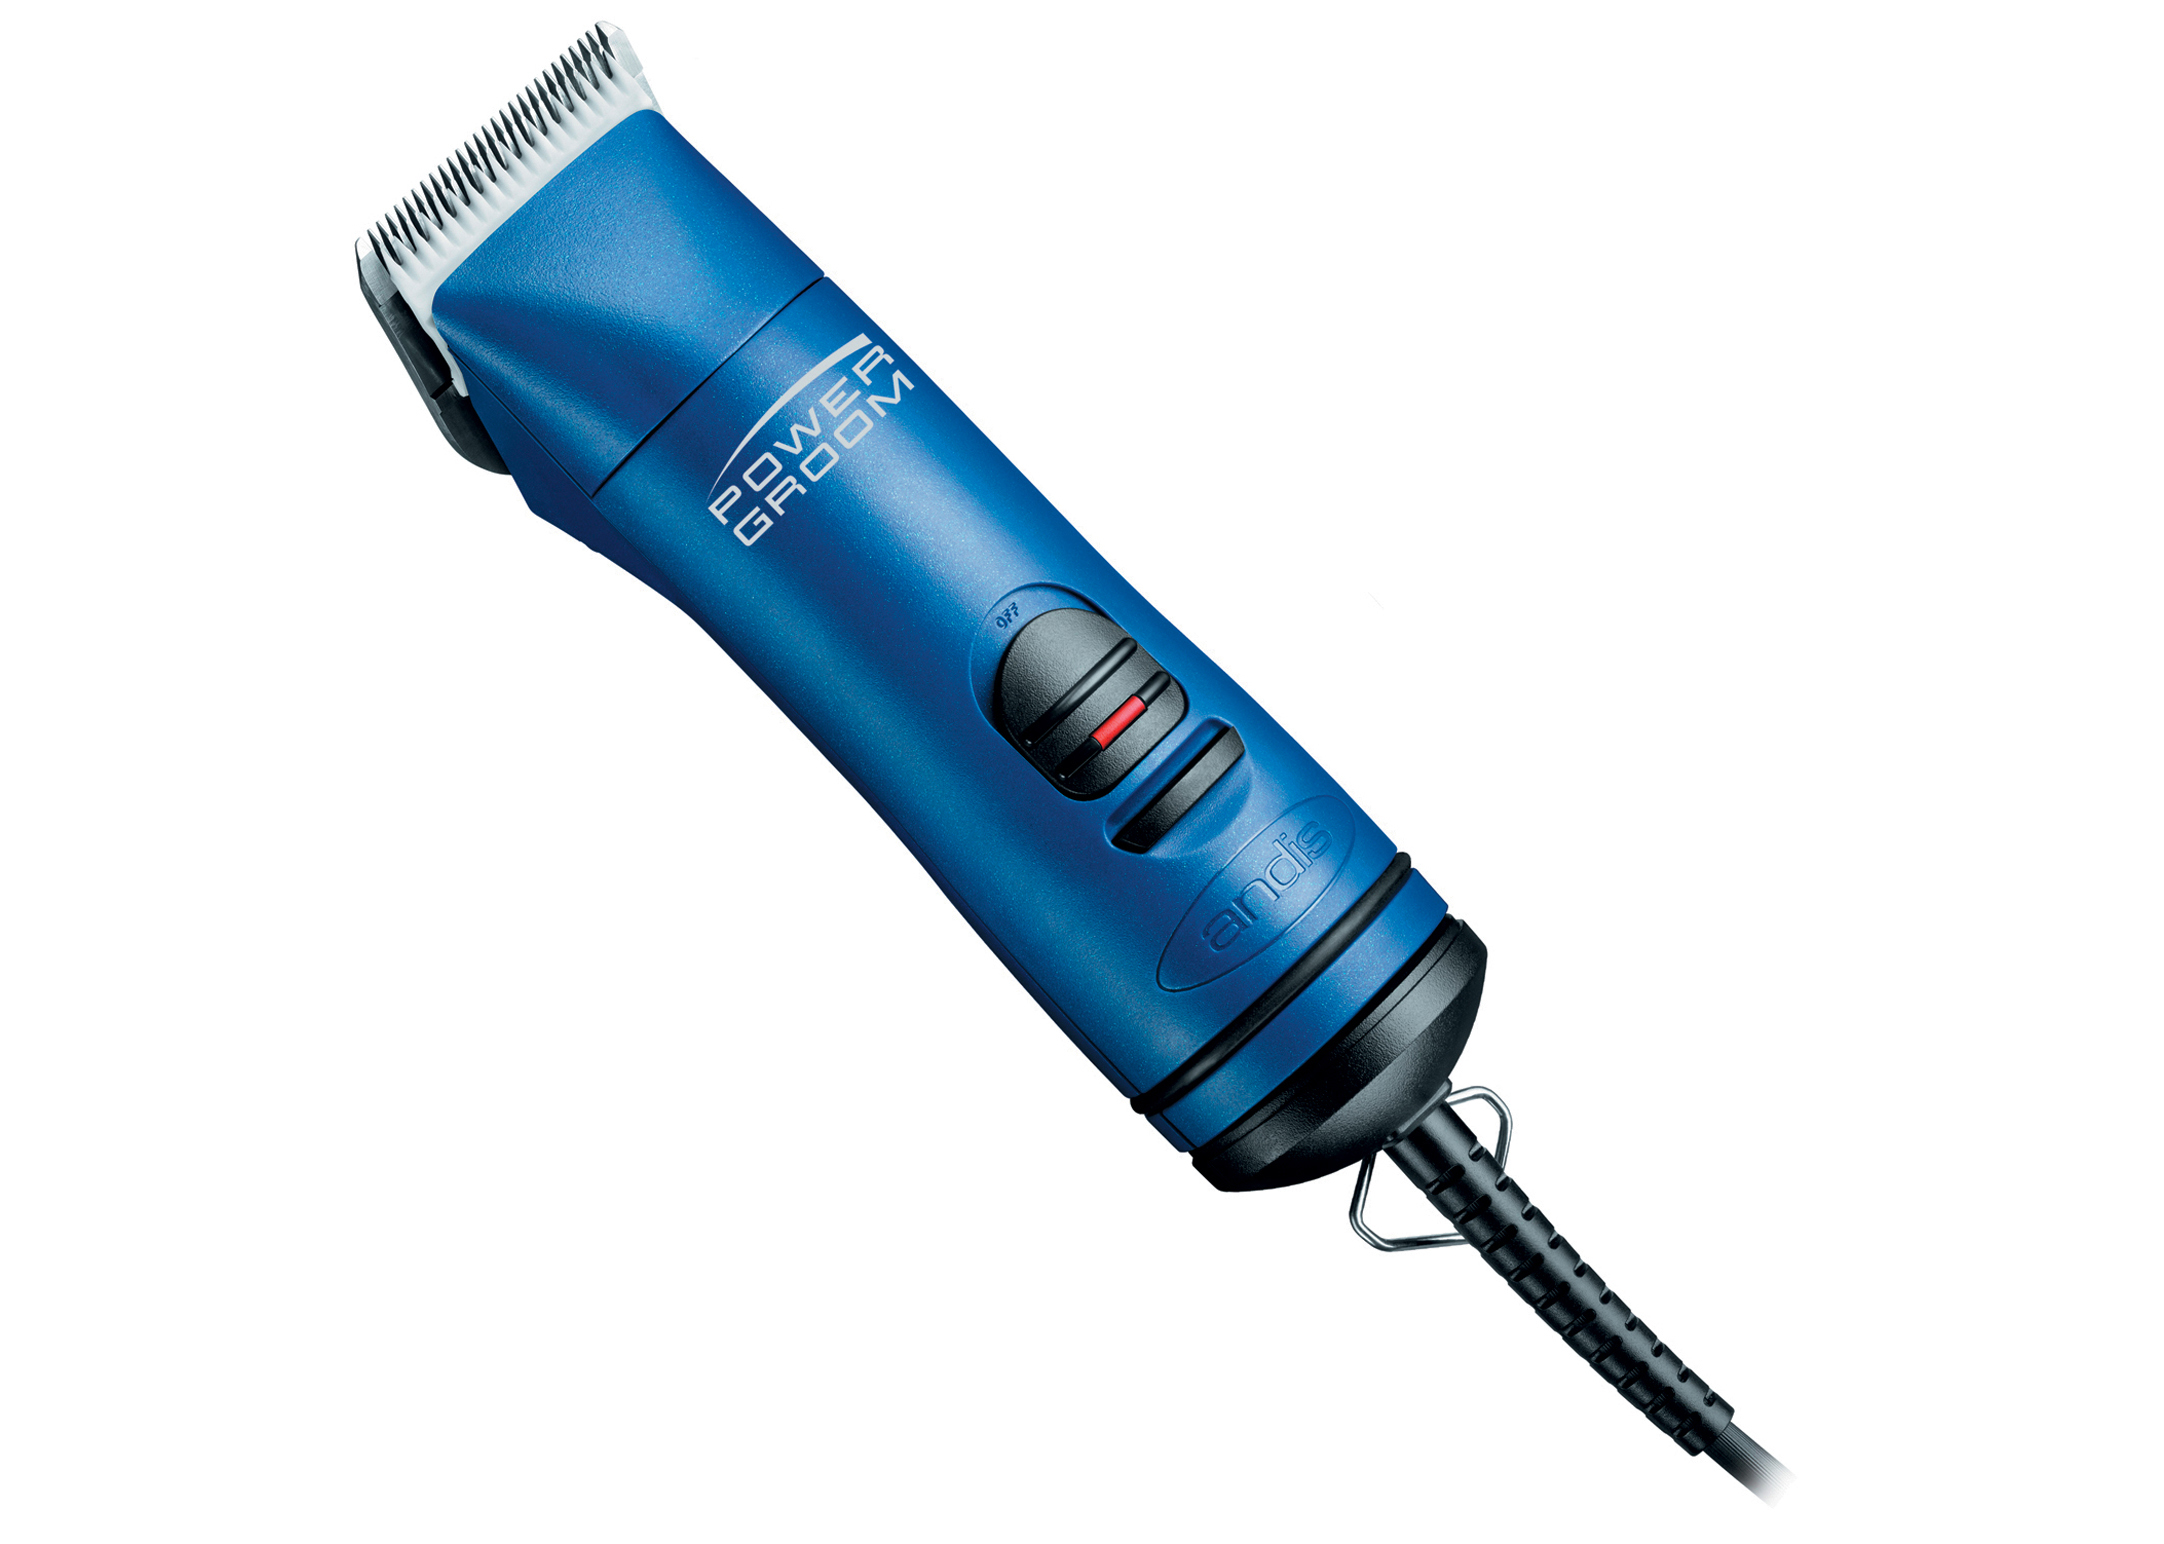 Andis Power Groom+ 5 Speed Clipper Corded Clipper